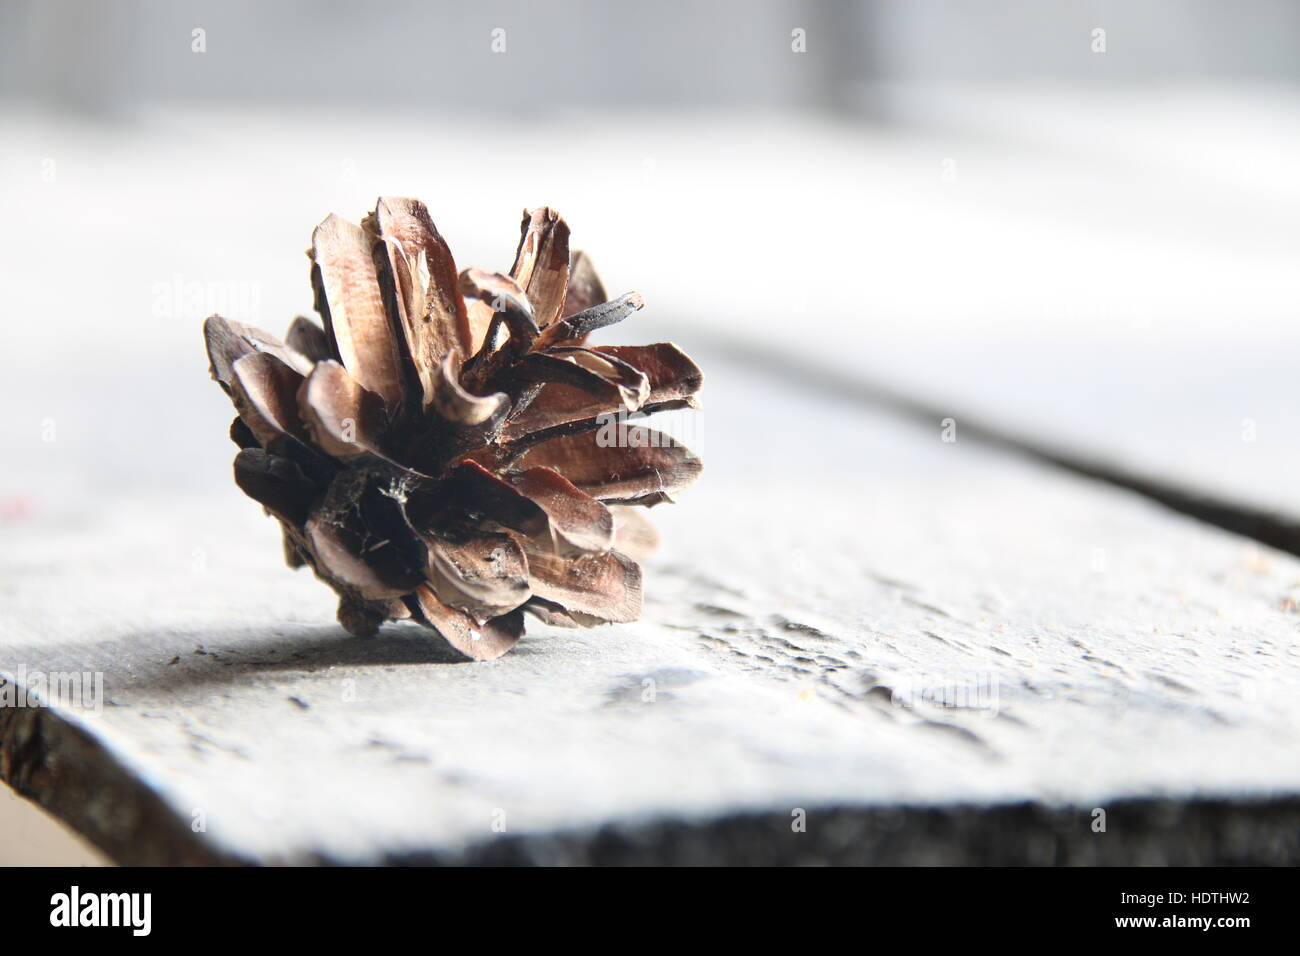 Rustic Winter Or Autumn Wallpaper Pine Cone On Gray Background Space For Text